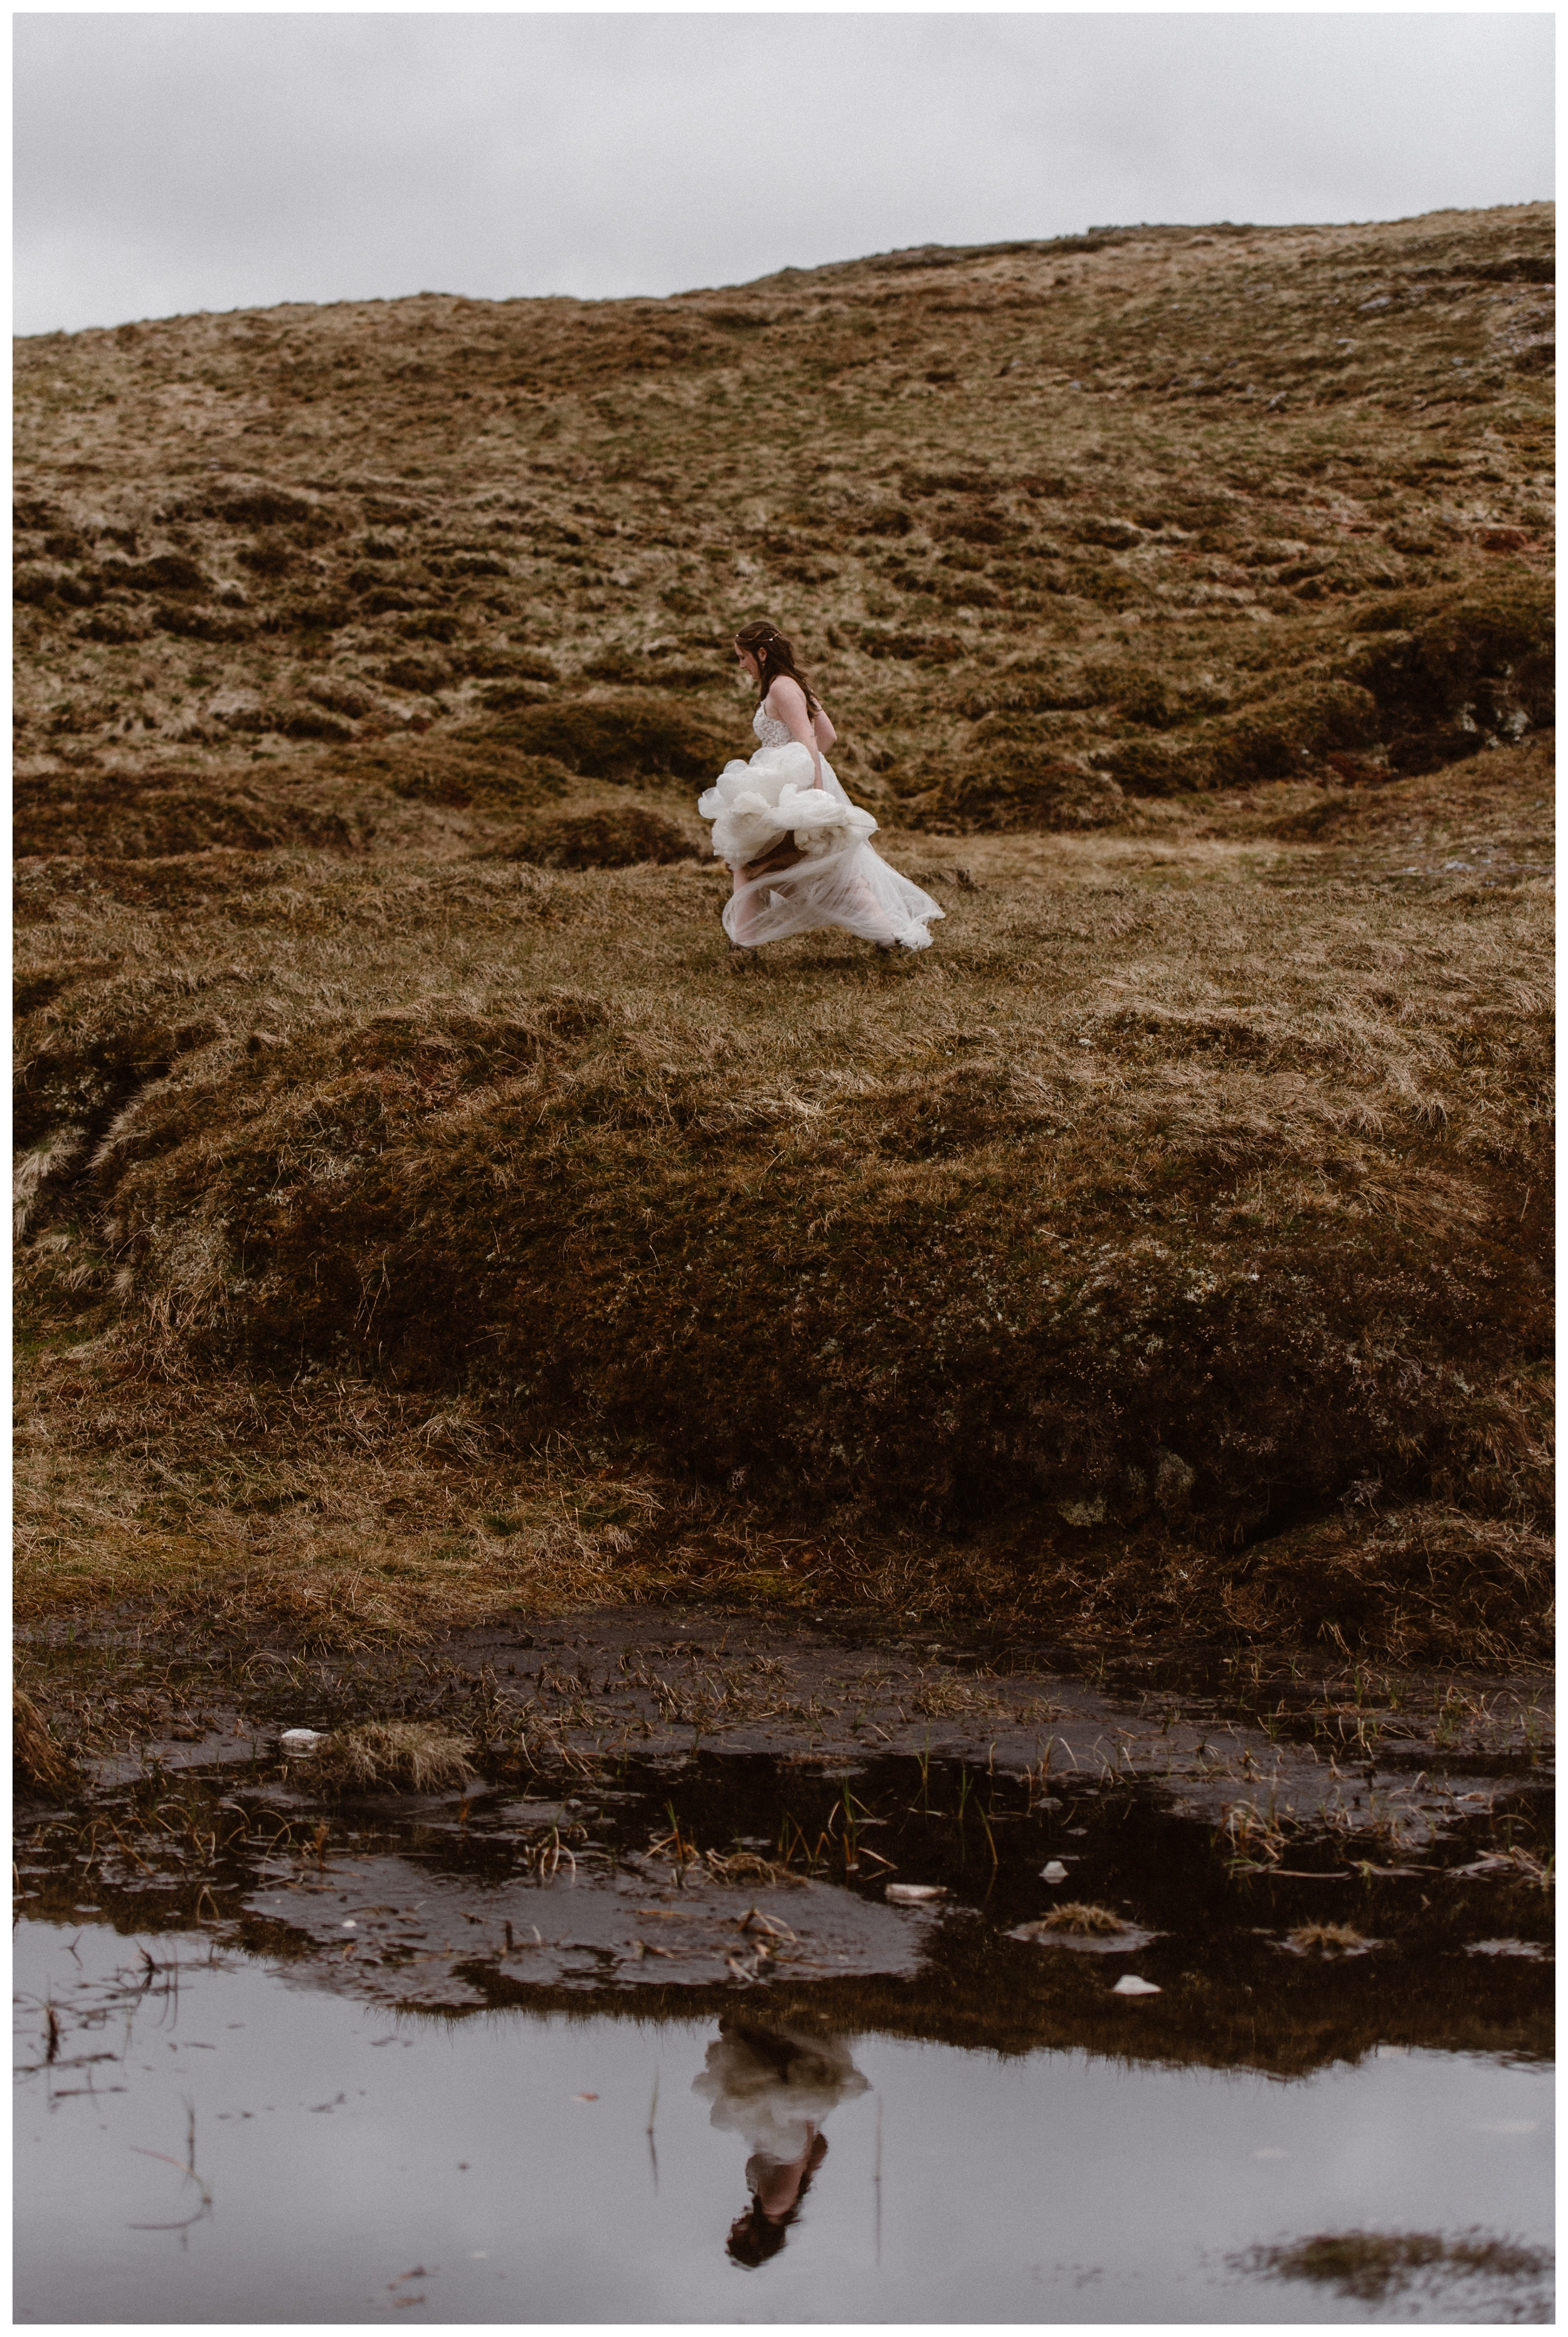 Her lace white wedding dress reflected in the boggy marshes of the Scottish Highlands, Elissa runs through the tall grass on the way to her elopement ceremony. Photo by Maddie Mae, Adventure Instead.